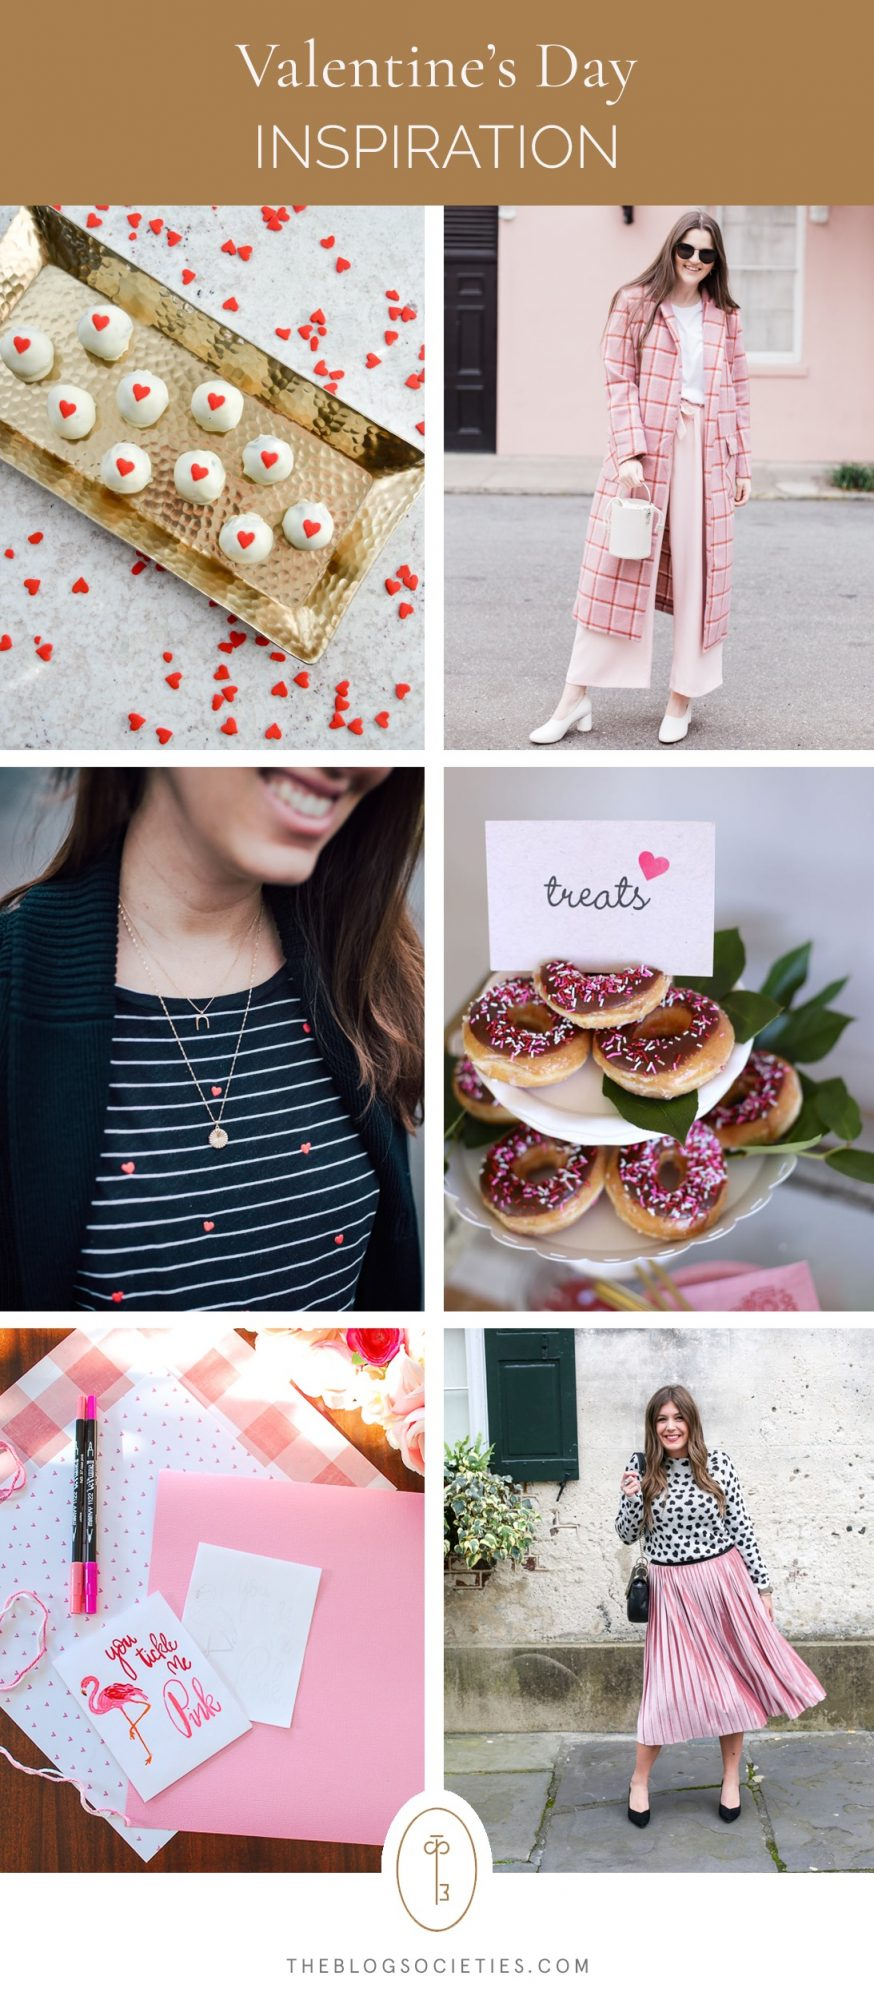 Valentines Day inspiration for decor and outfits